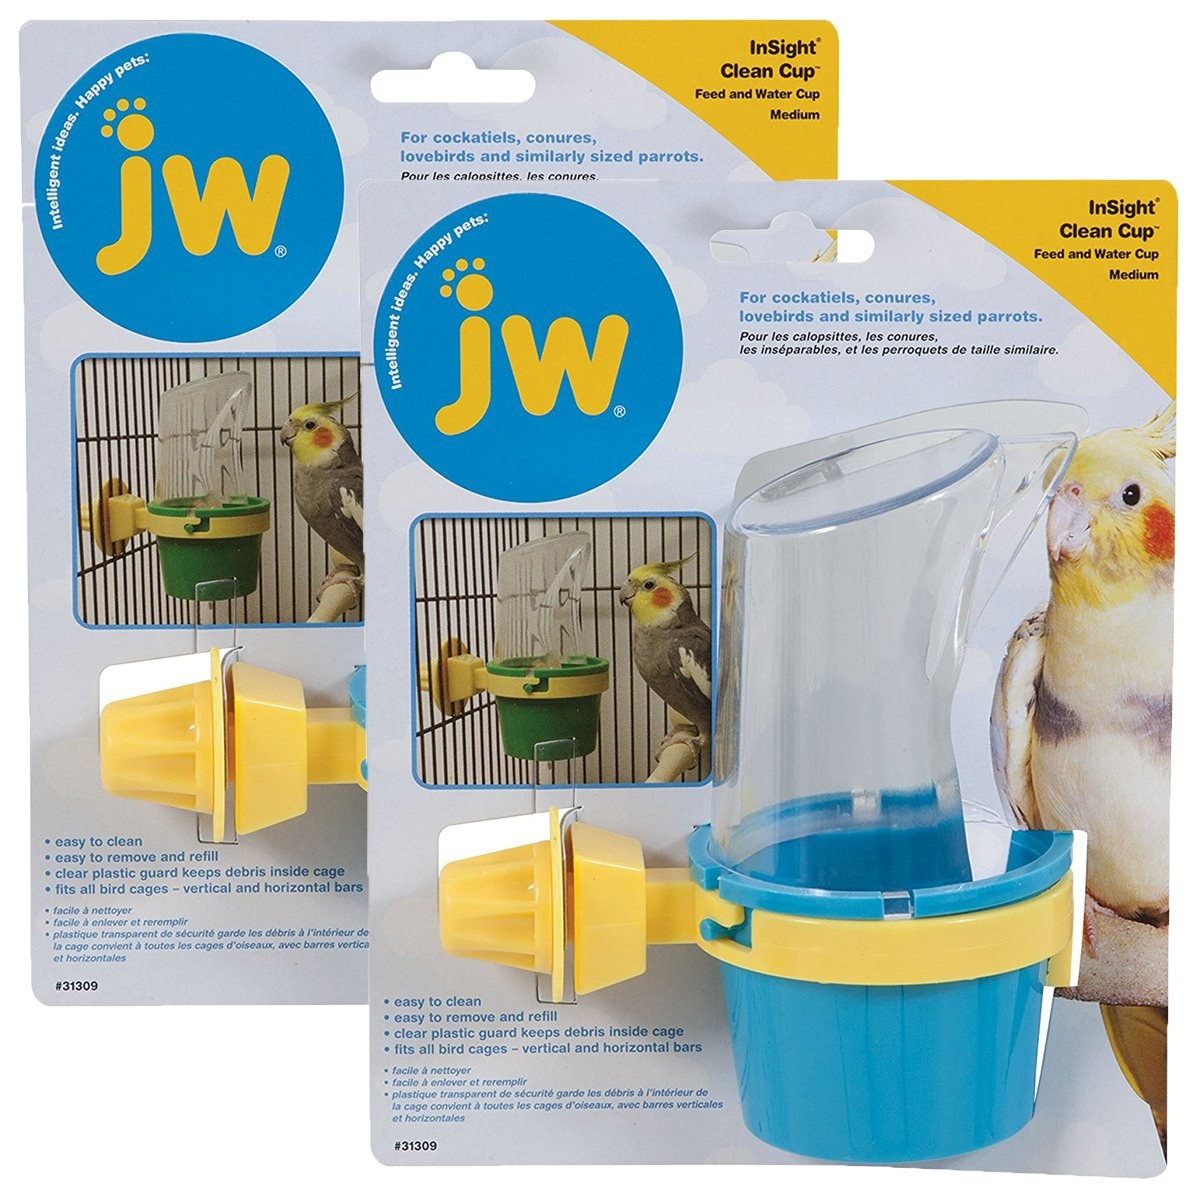 JW Pet Company Clean Cup Feeder and Water Cup Bird Accessory, Medium, Colors may vary by JW Pet